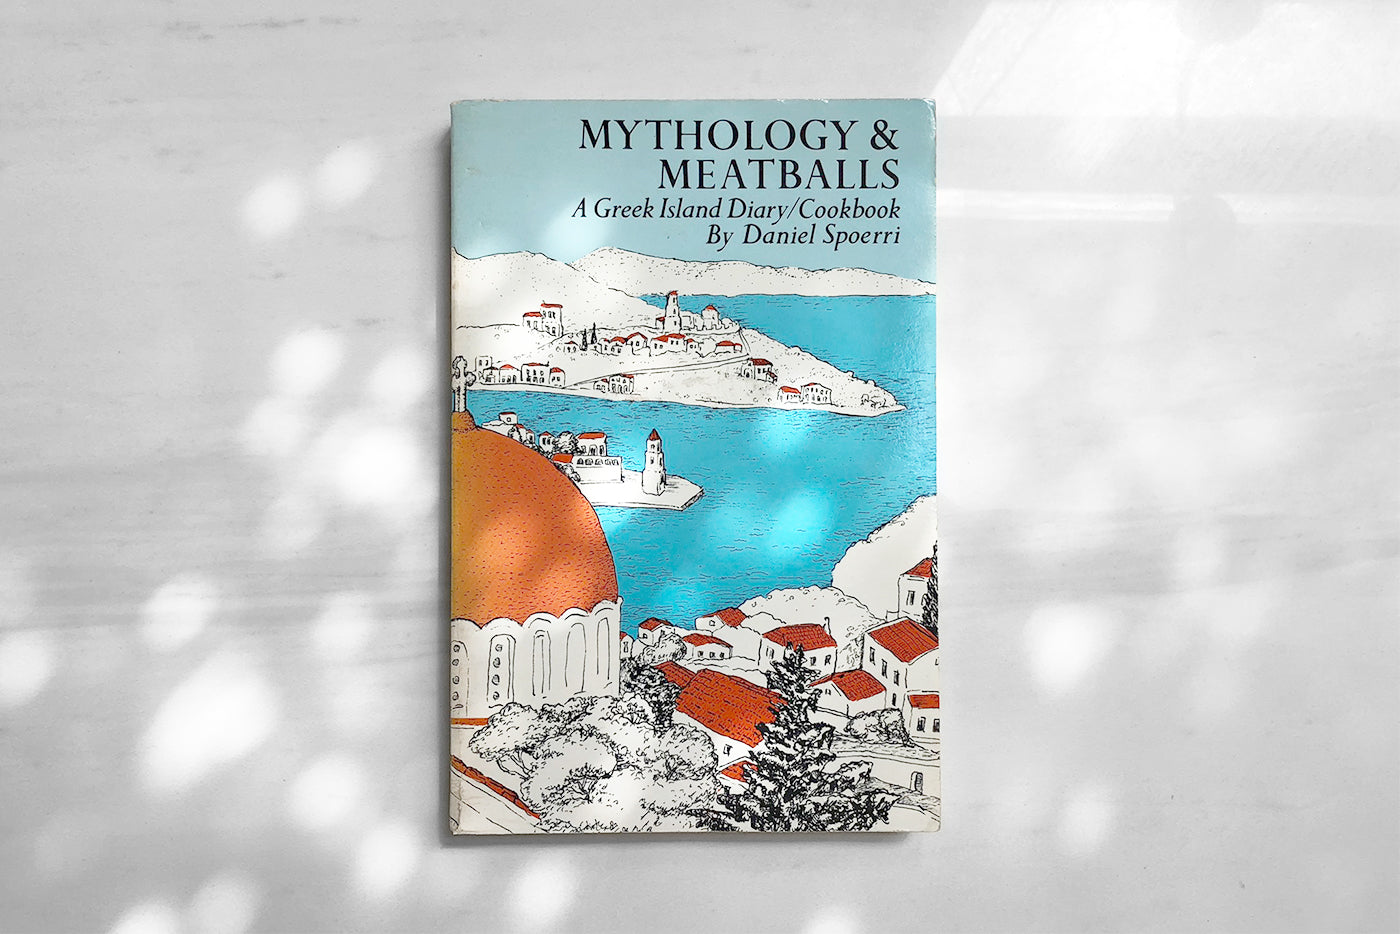 Mythology & Meatballs by Daniel Spoerri